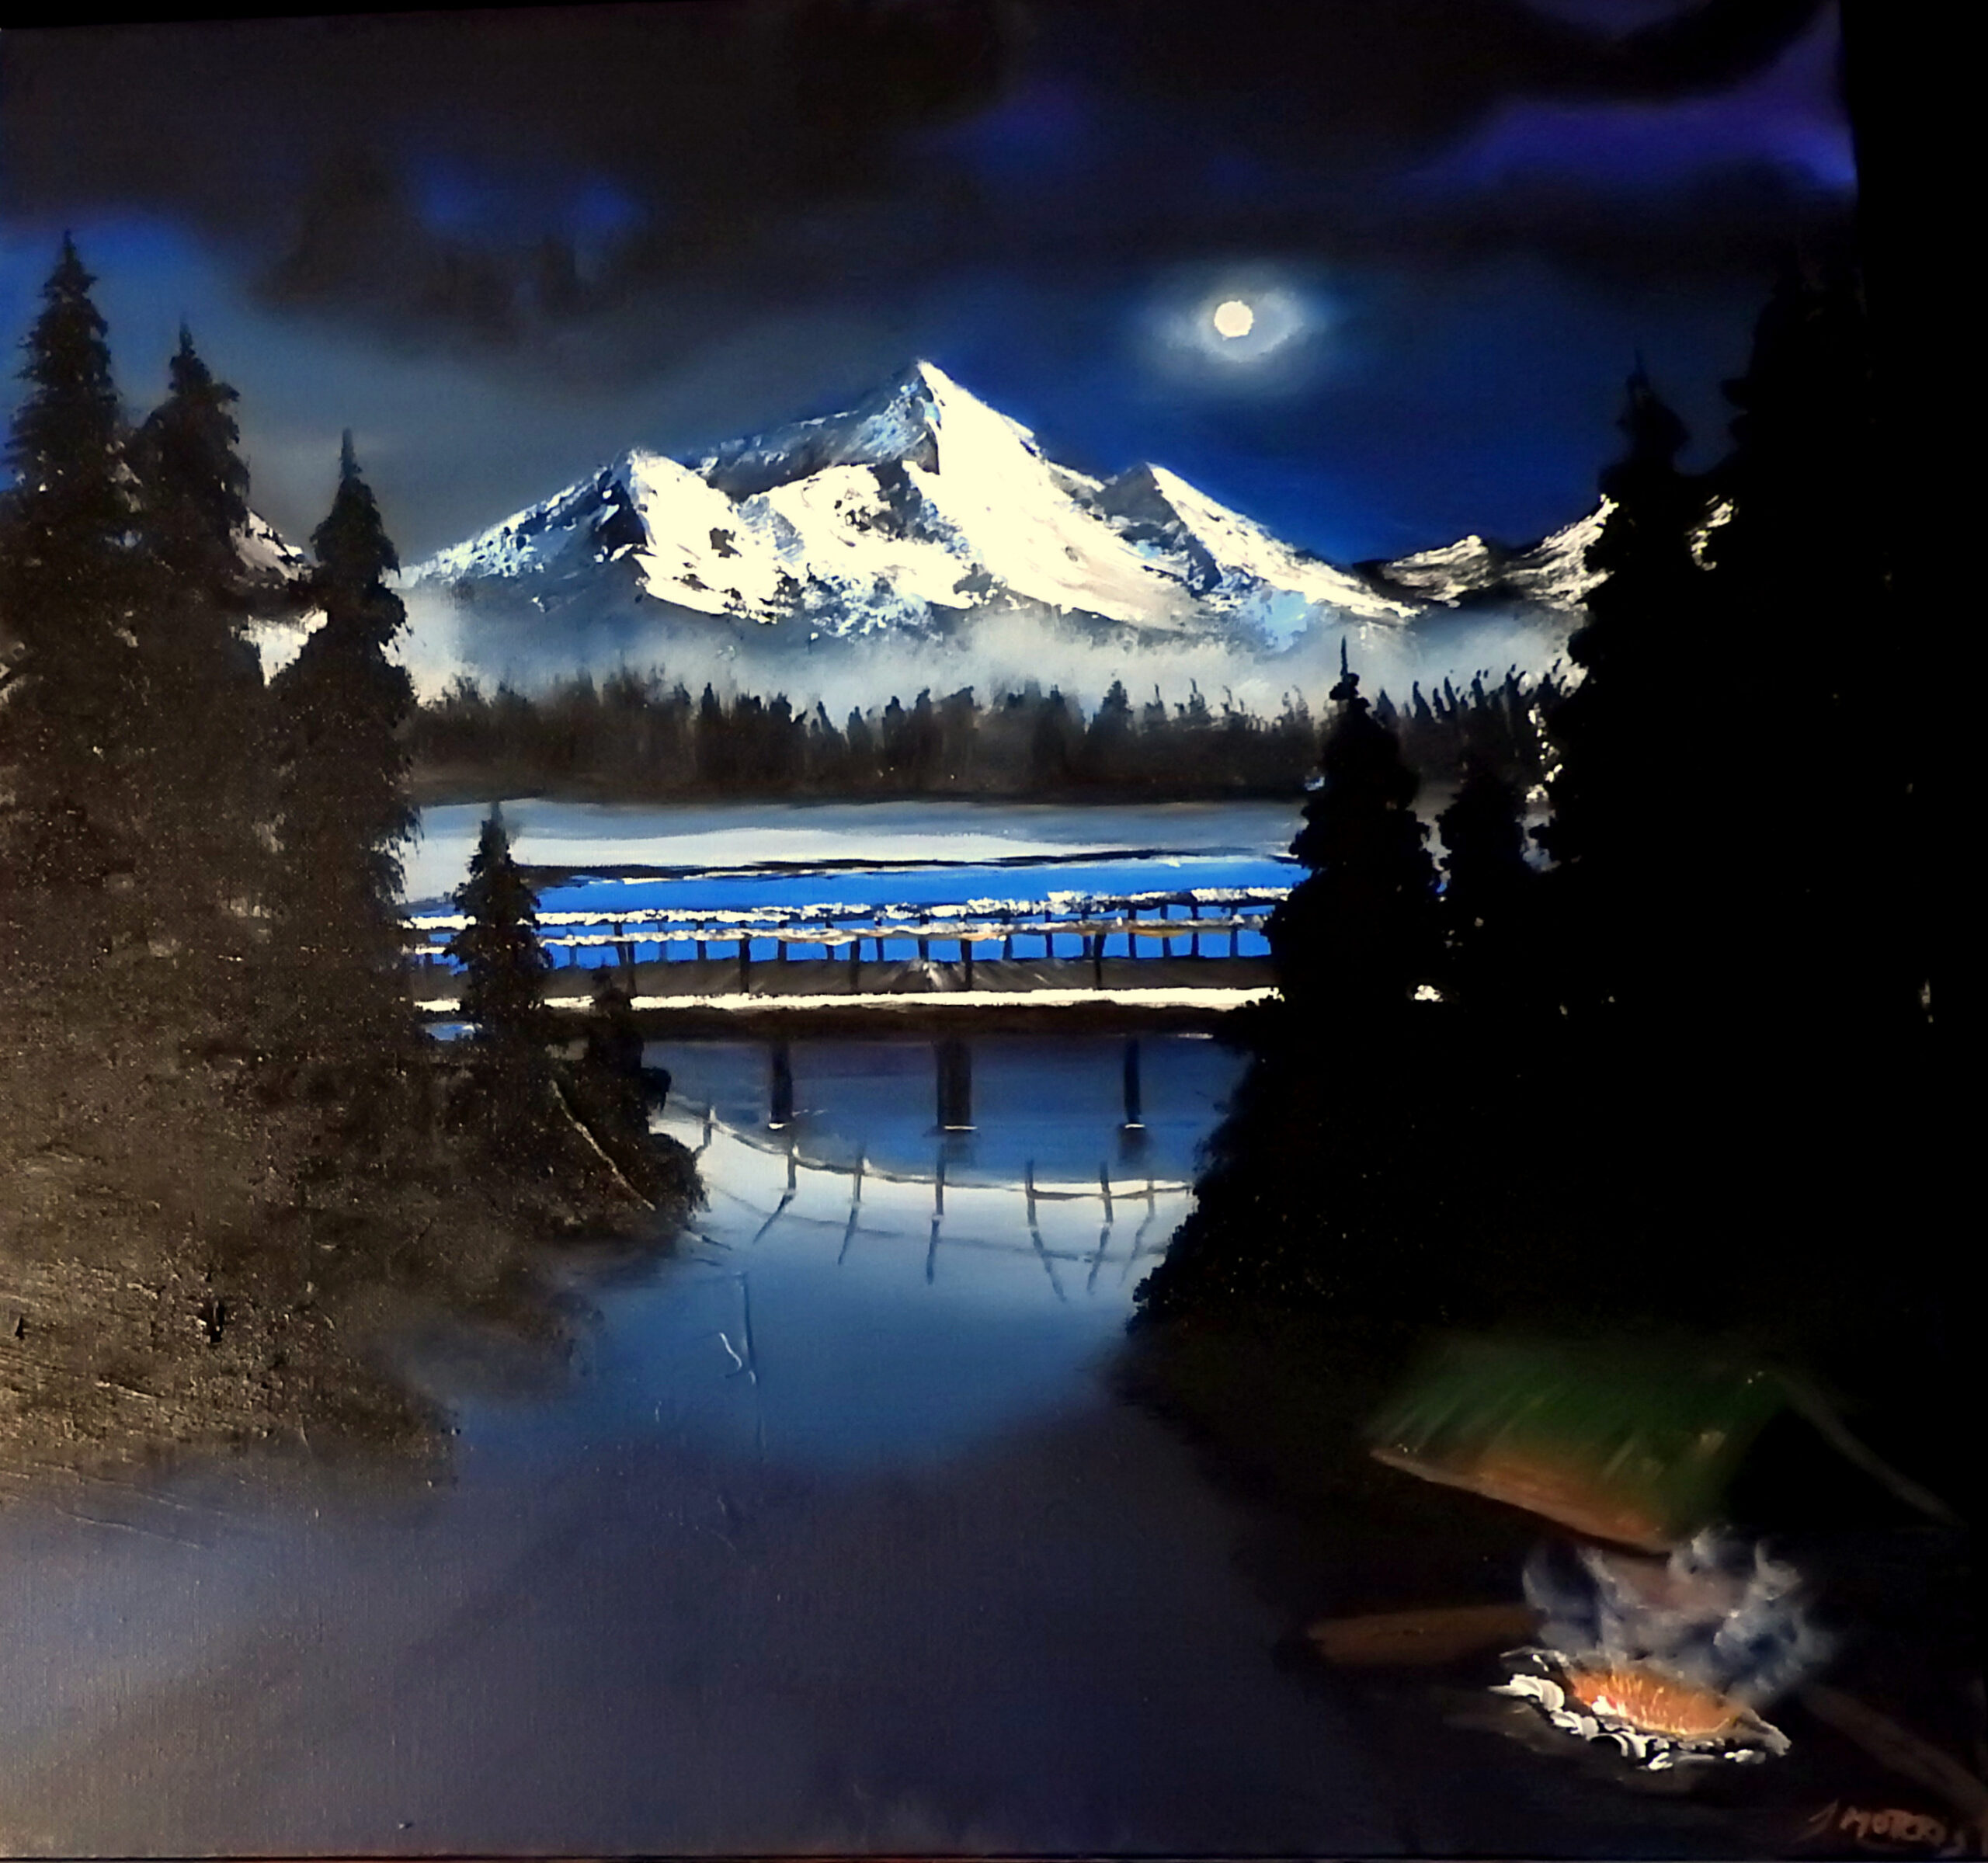 Heart of the mountains – Mountain painting